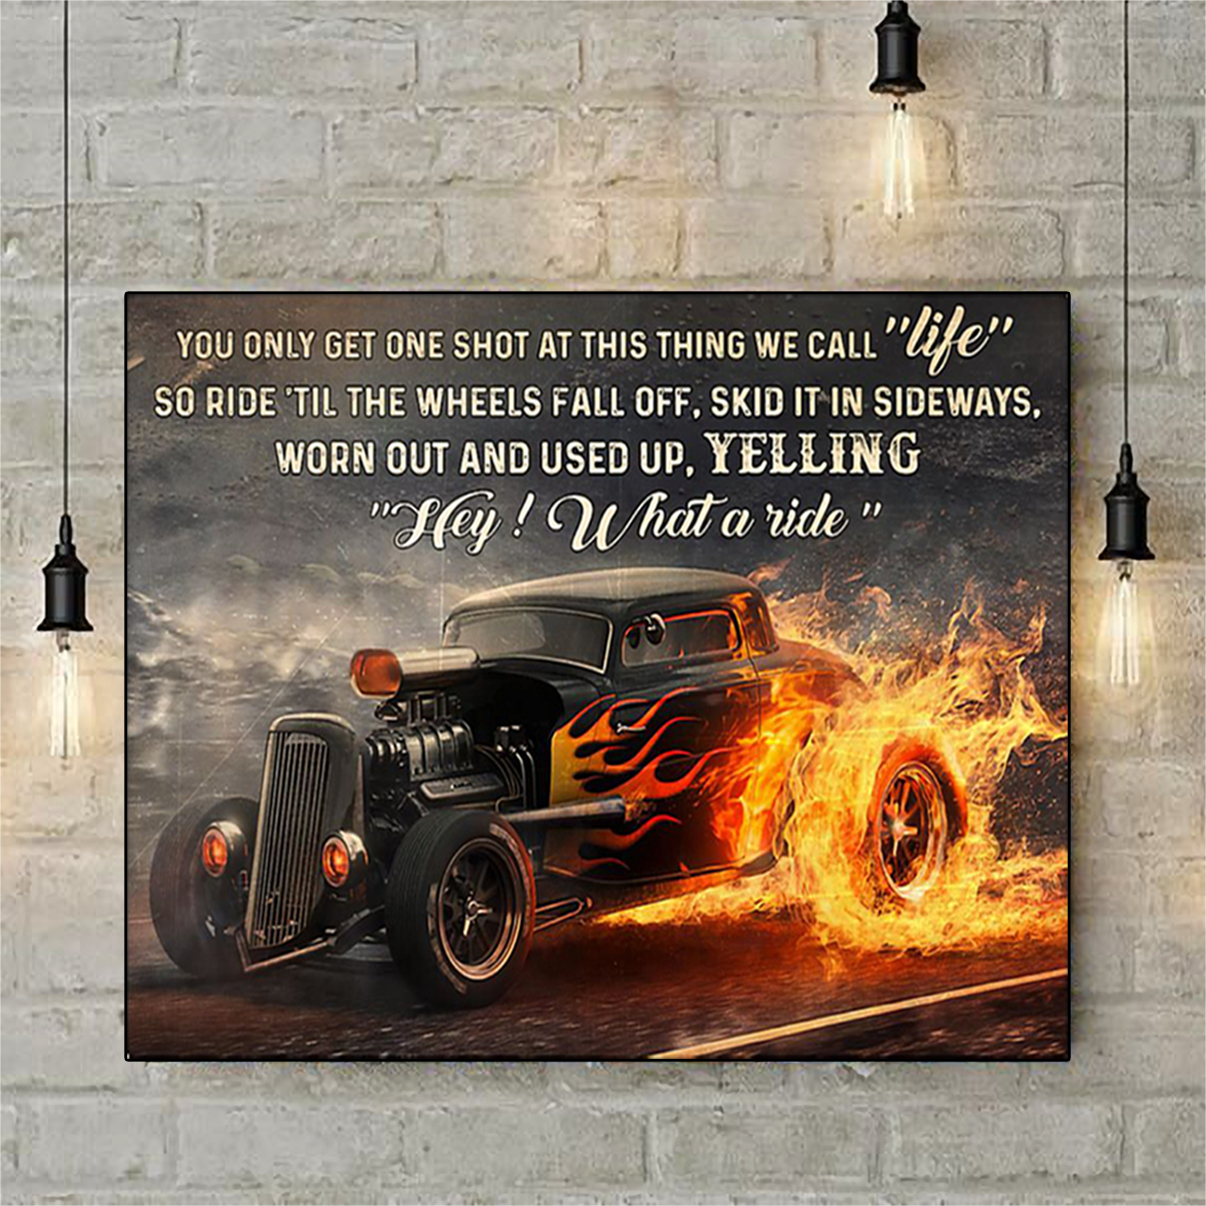 Hot rod what a ride poster A1